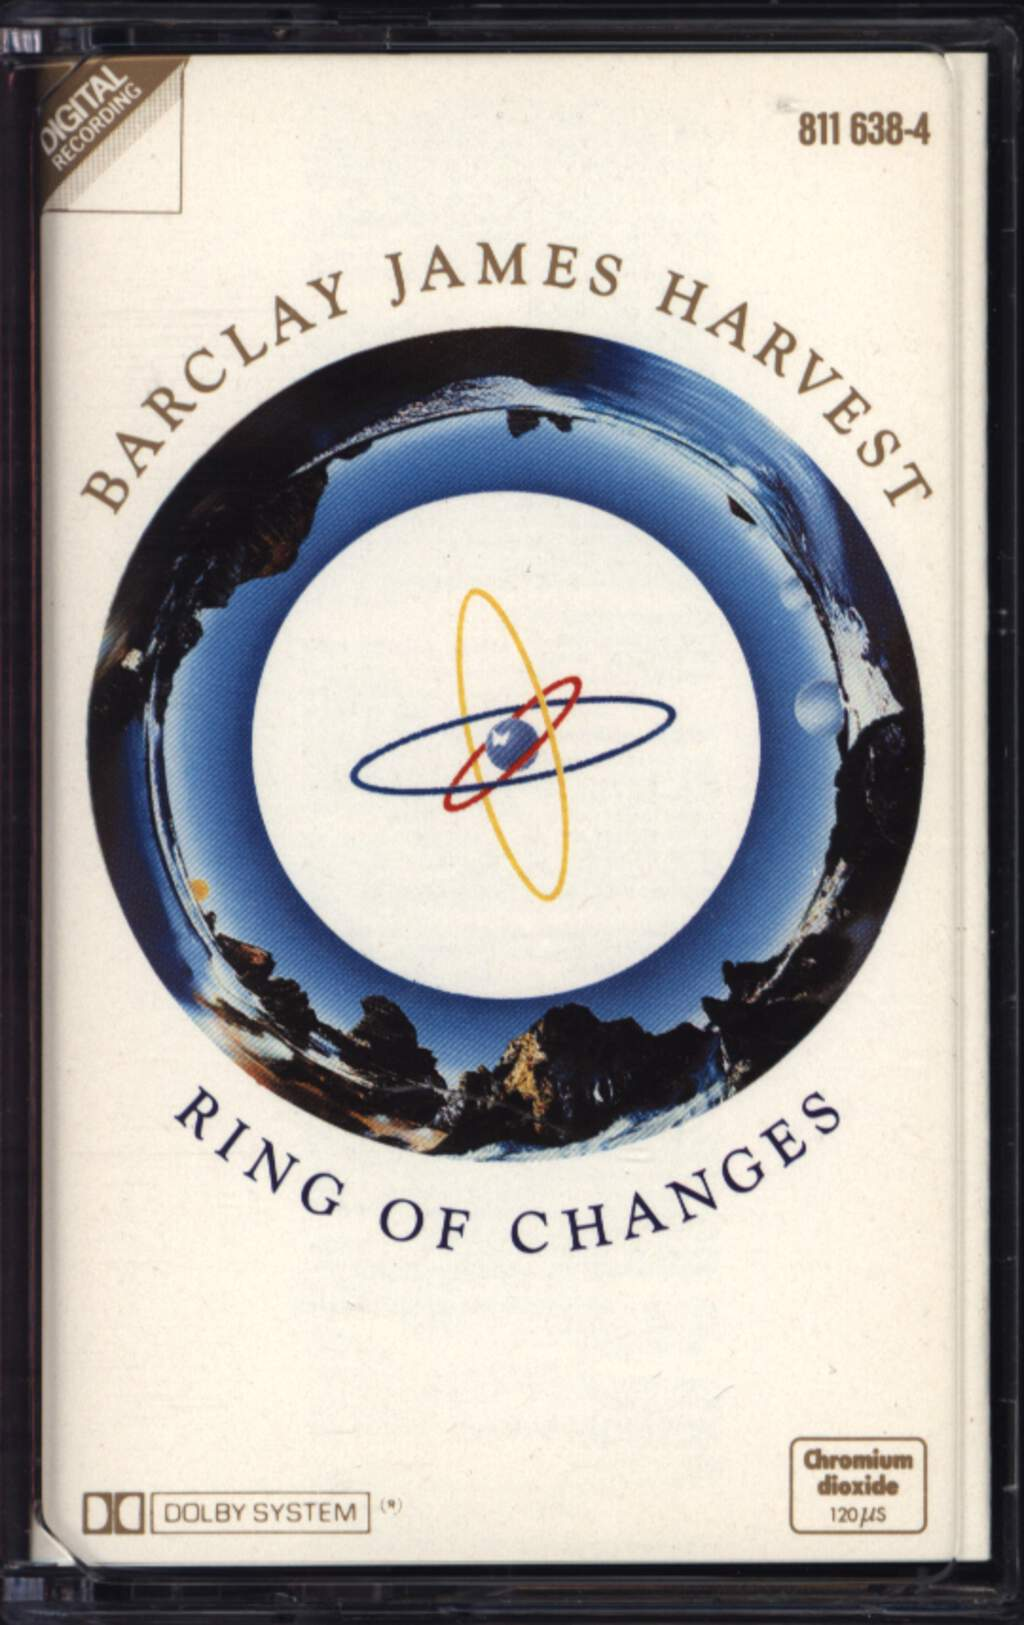 Barclay James Harvest: Ring Of Changes, Compact Cassette